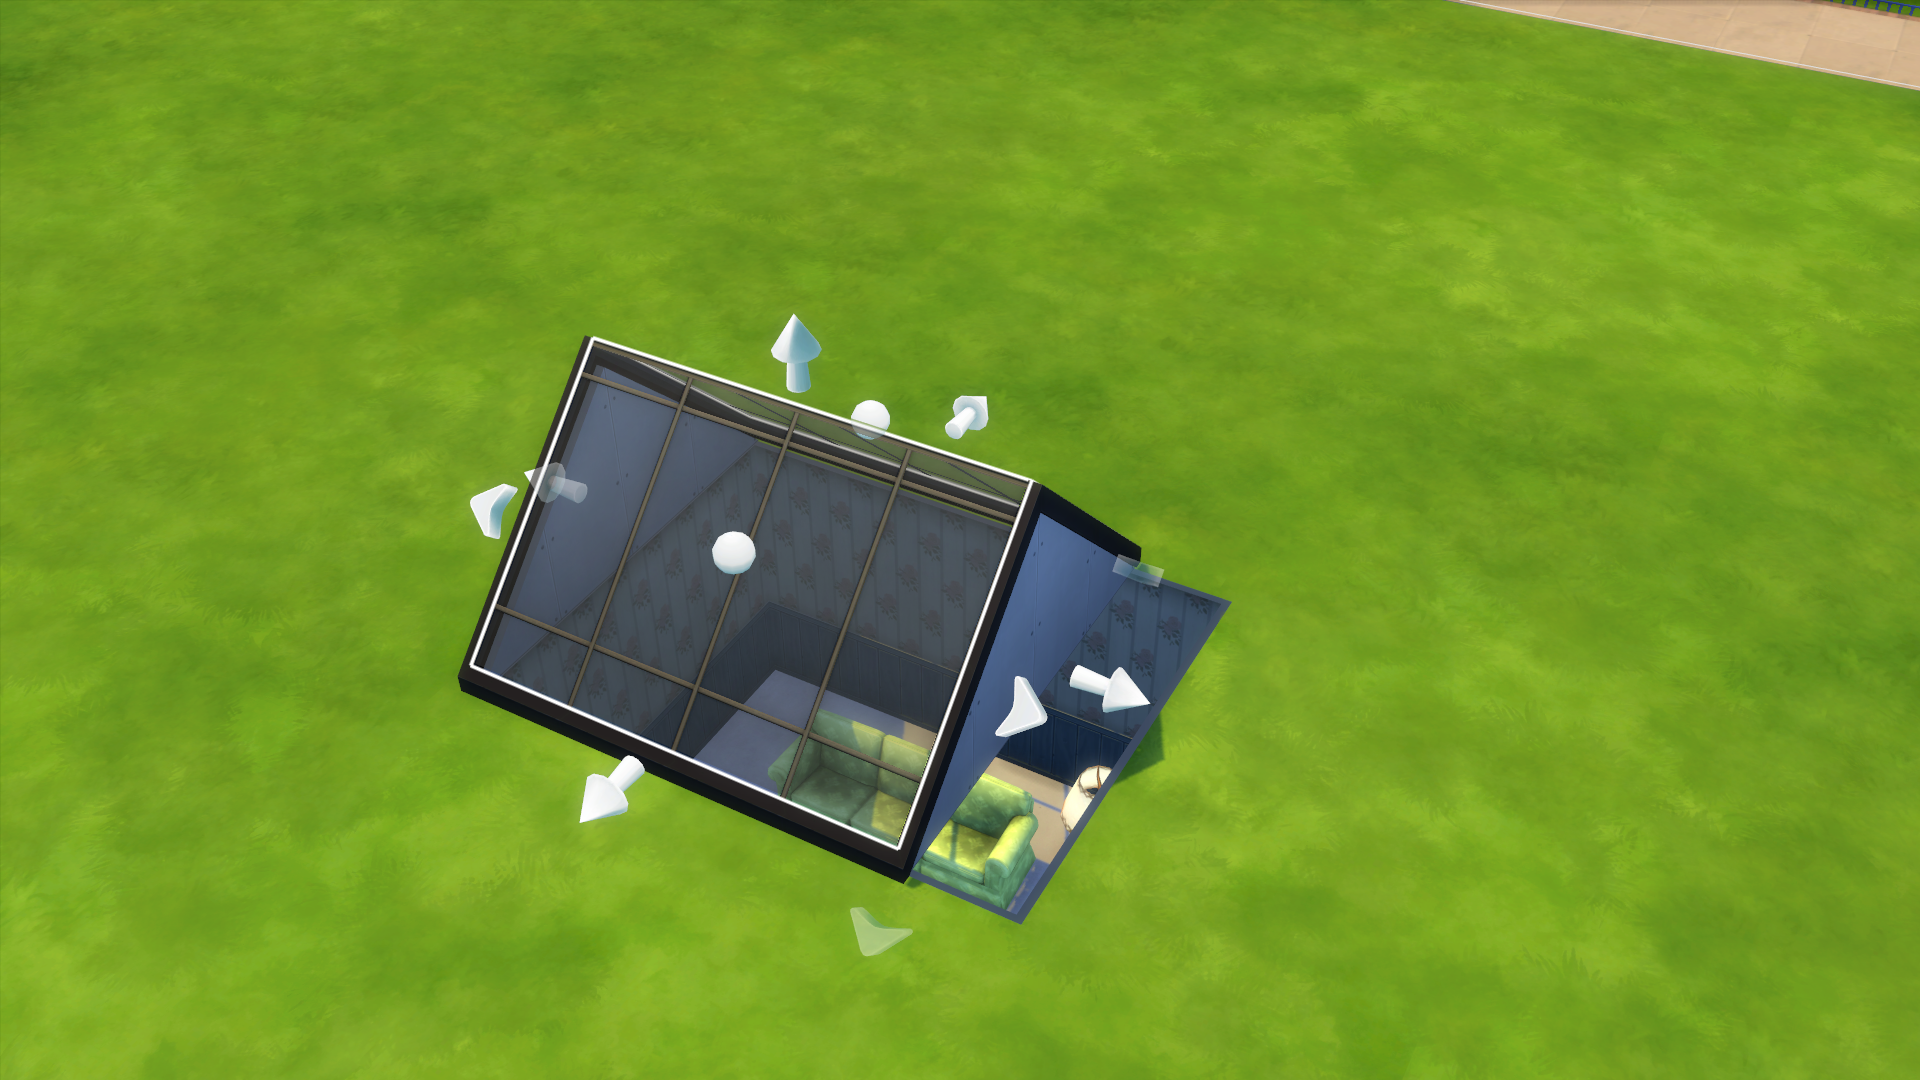 resized4x4GlassRoof.png